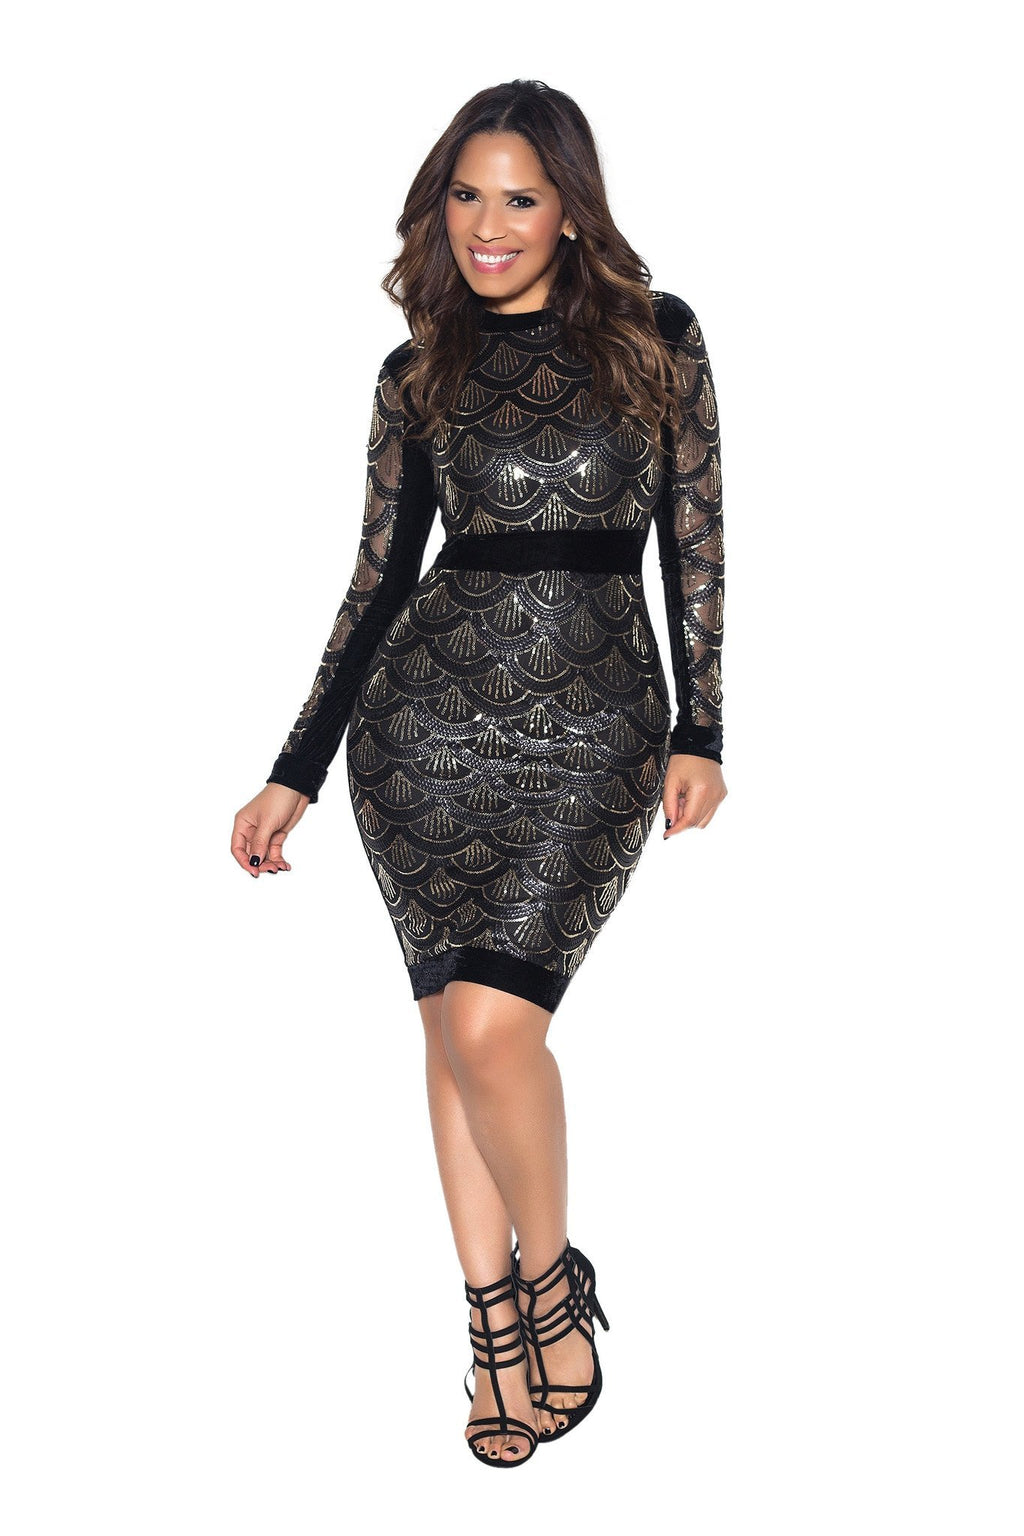 Black Velvet Sequin Pattern Long Sleeve Bodycon Dress - MY SEXY STYLES